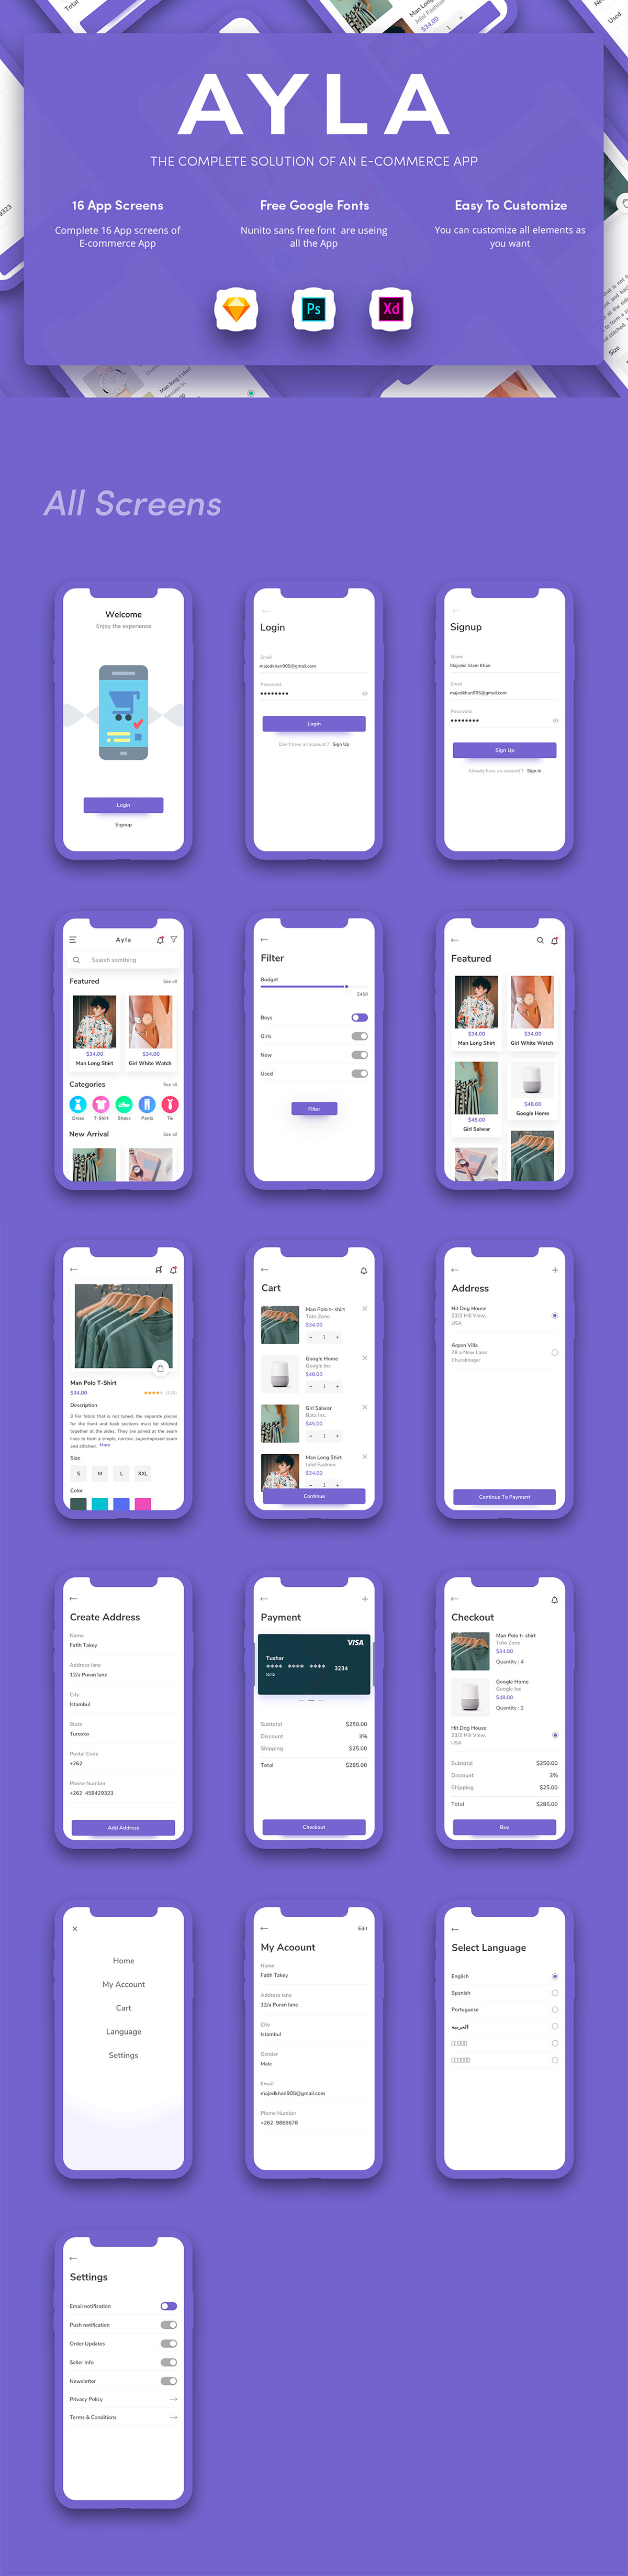 多功能时尚电商APP UI KITS [XD,PSD,Sketch] Ayla Ecommerce UI Kit